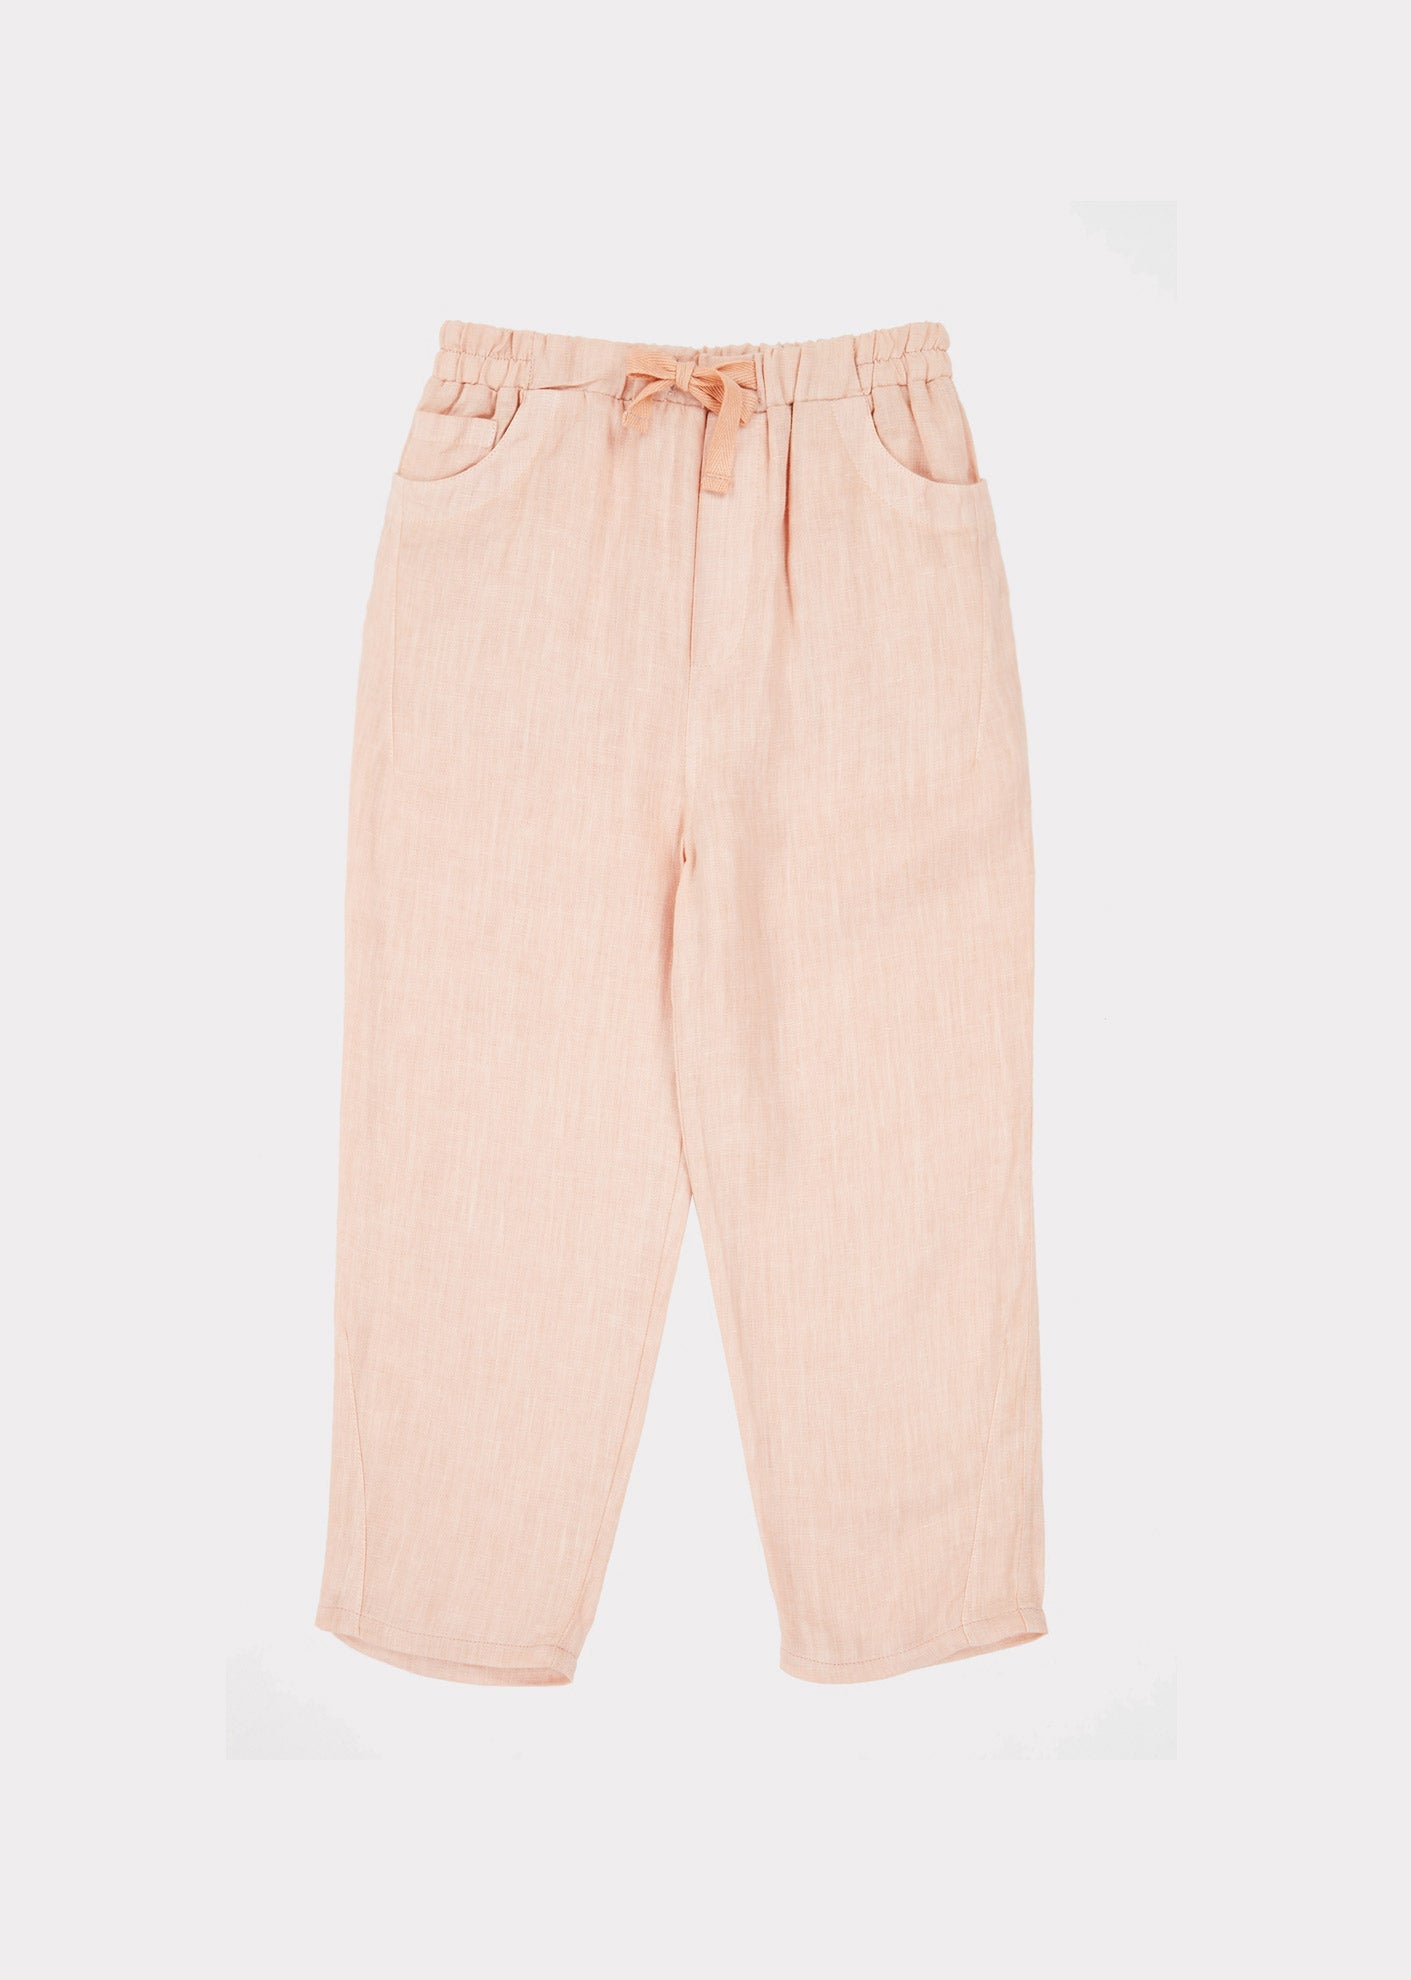 Aldgate Trouser, Shell